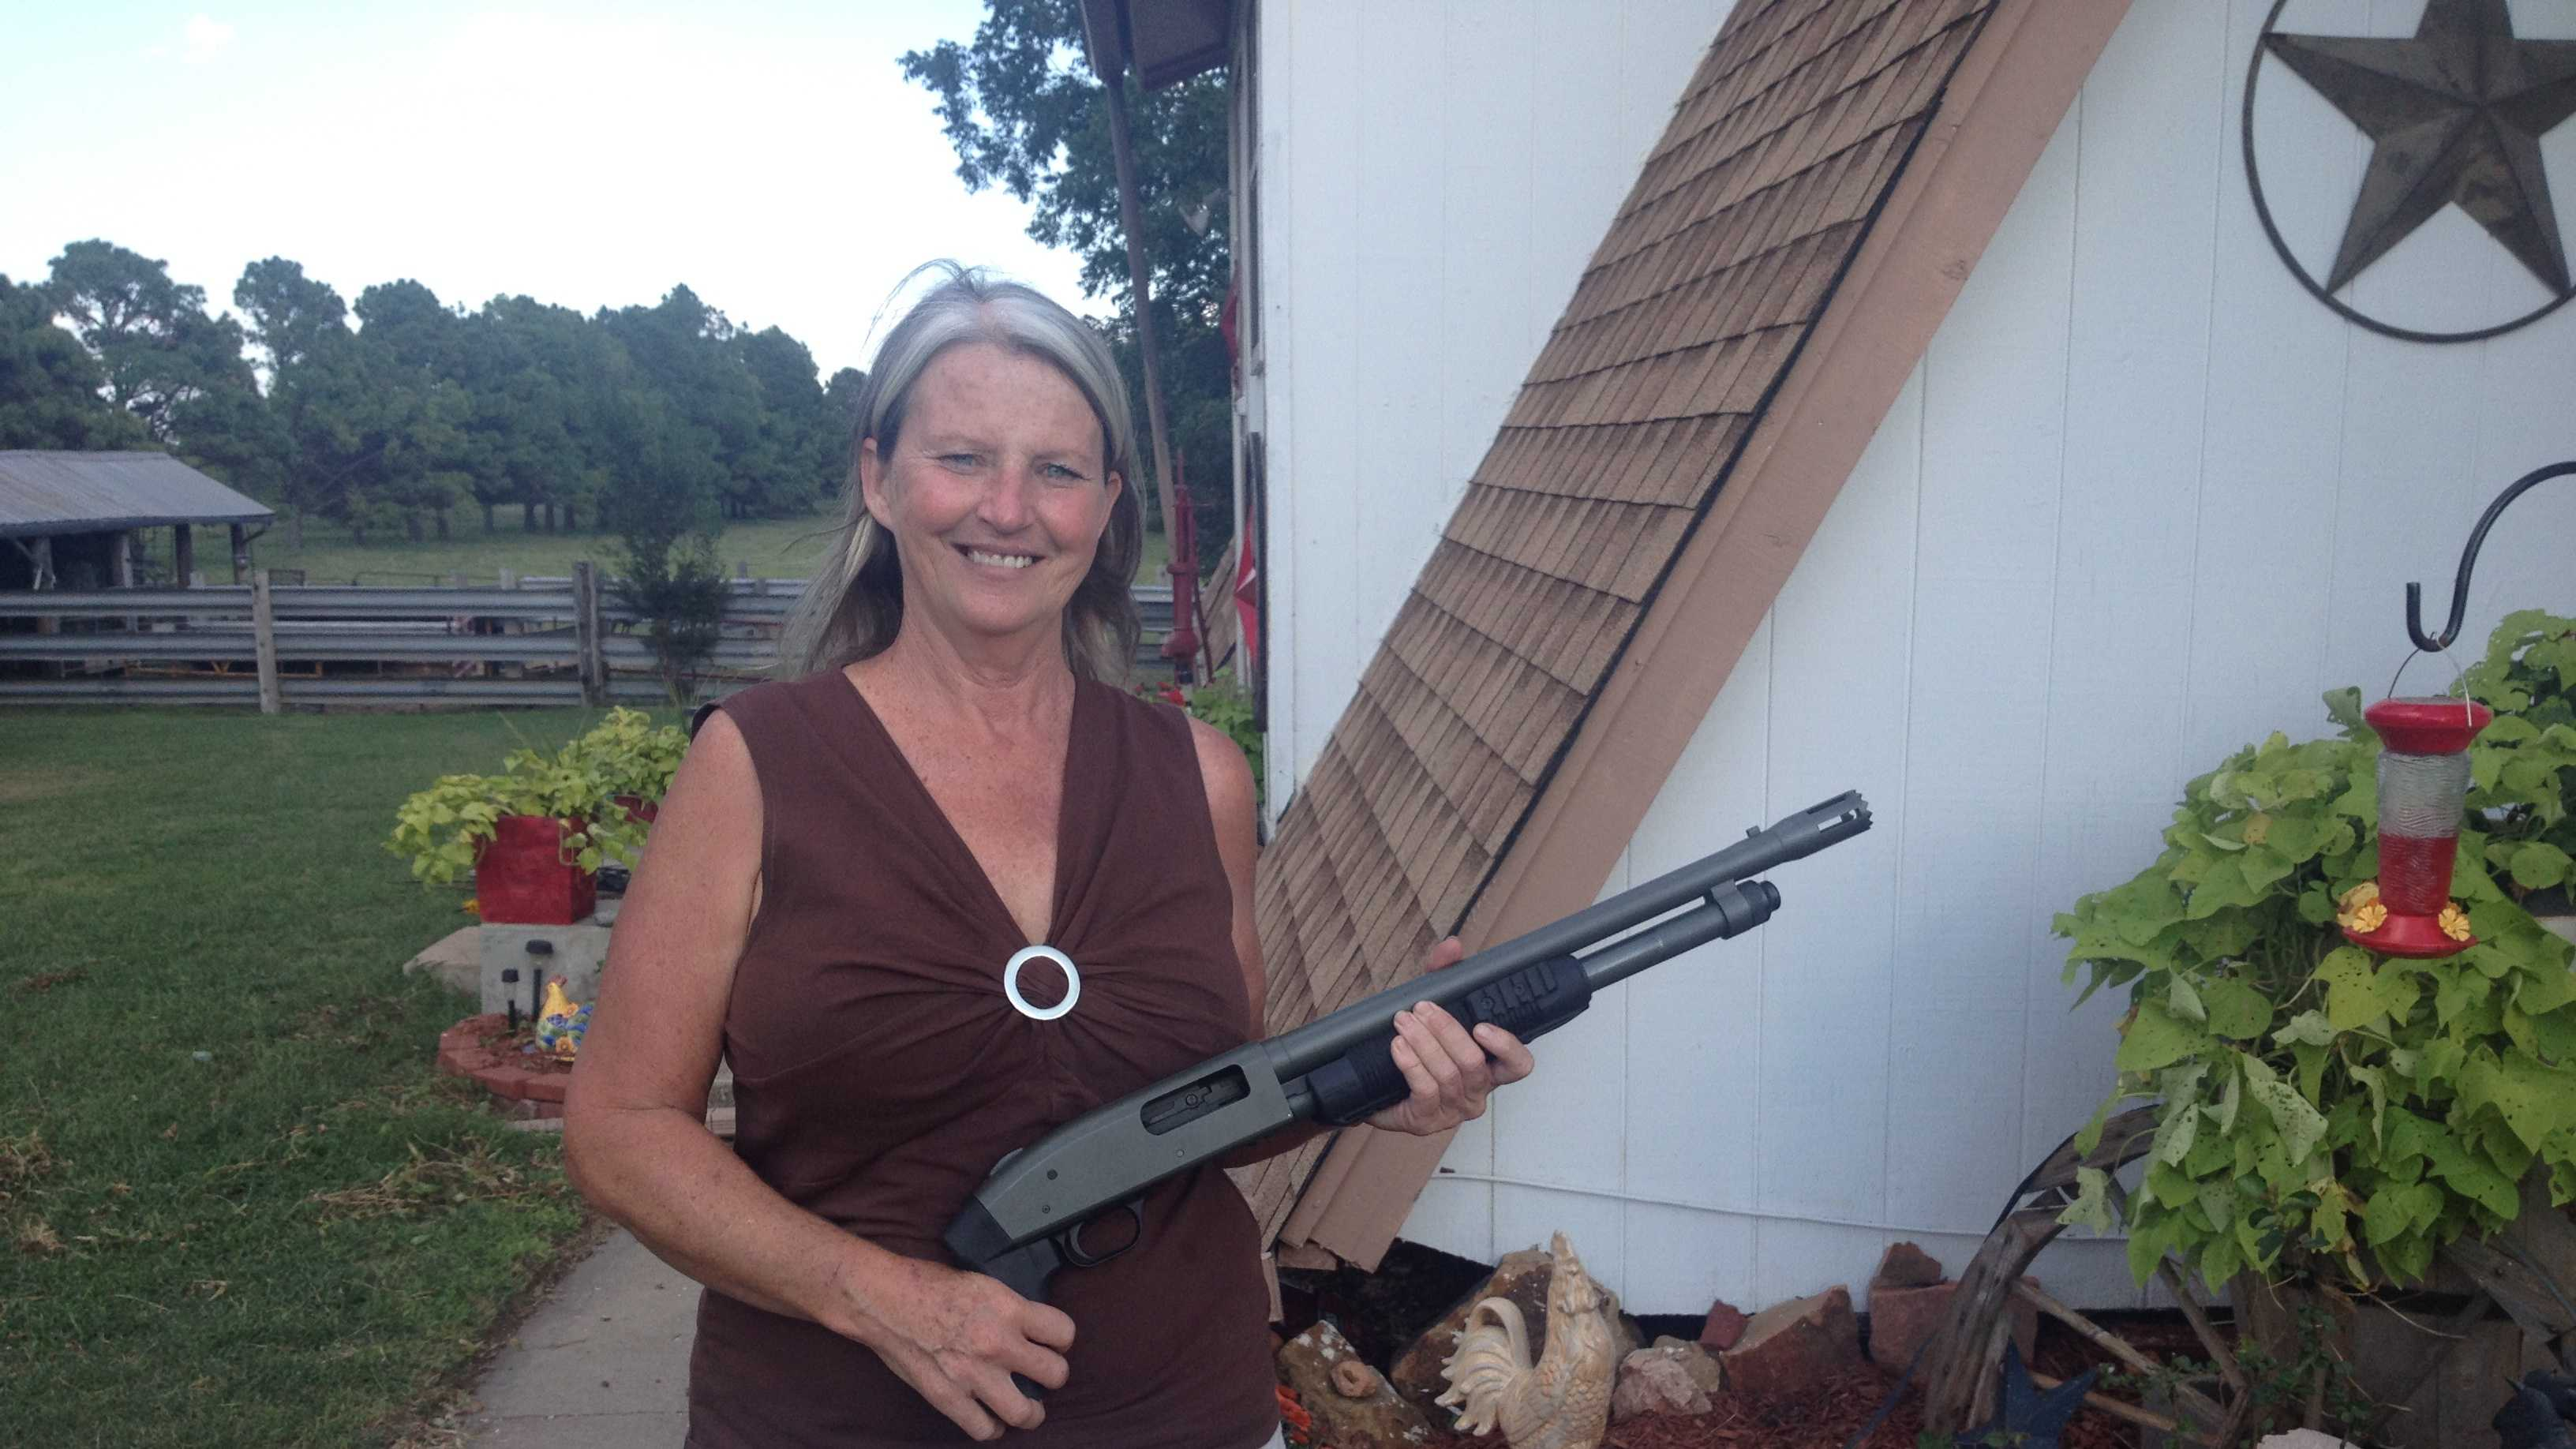 El Reno woman says she shot would-be home intruder in backside